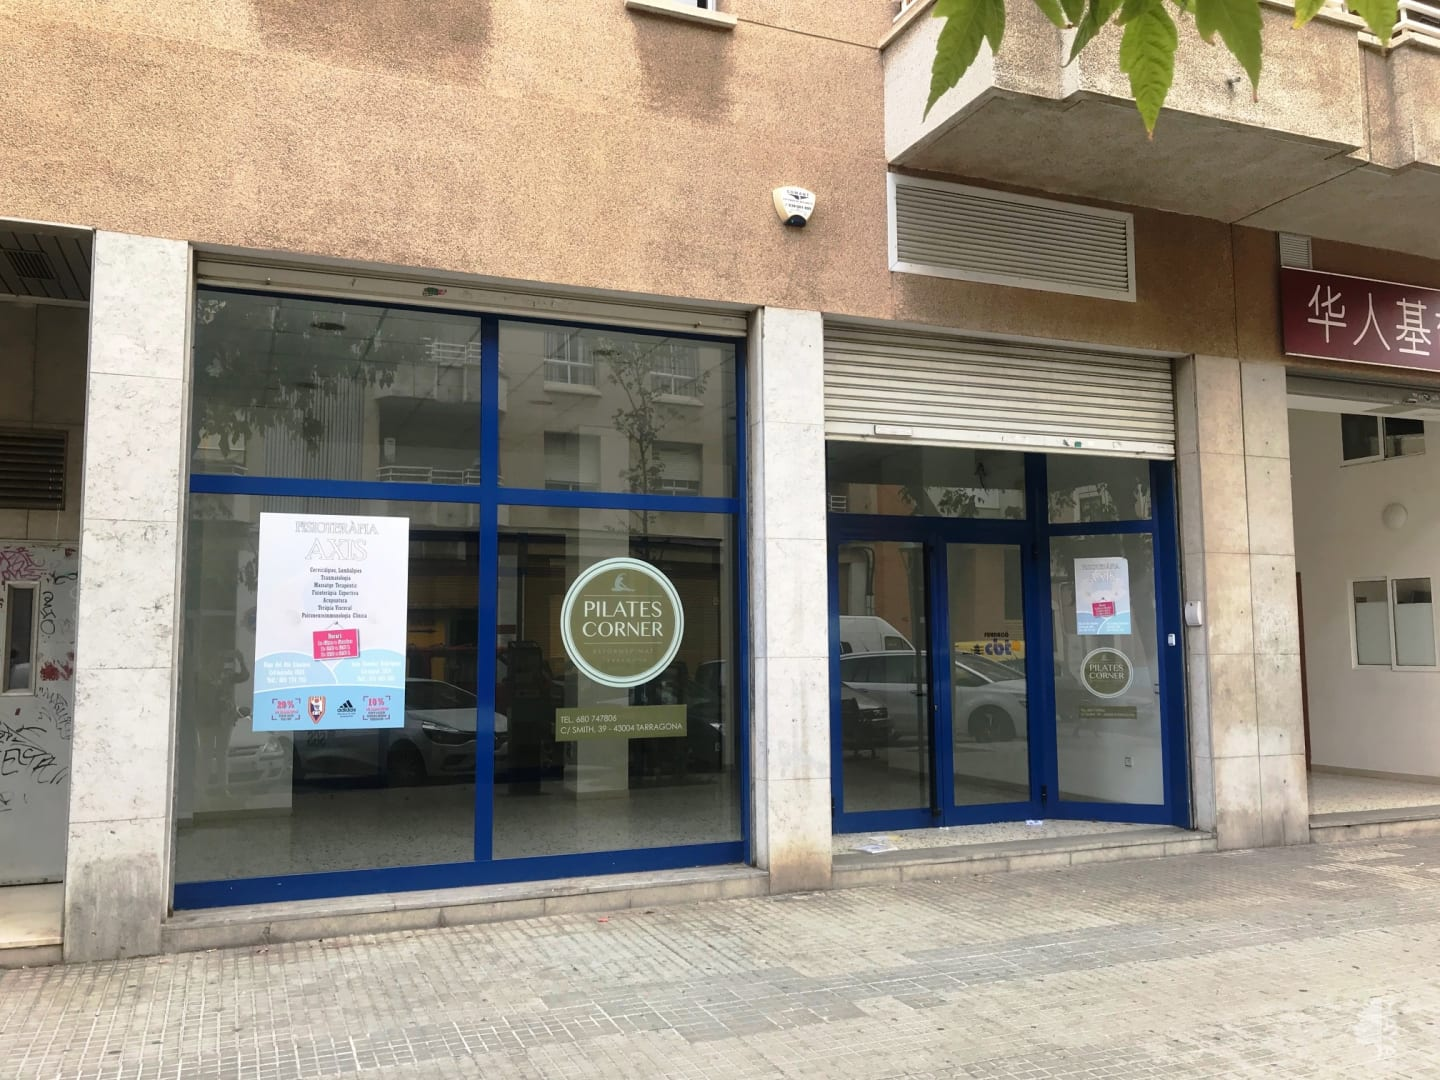 Local en venta en Torreforta, Tarragona, Tarragona, Calle Smith, 187.000 €, 204 m2